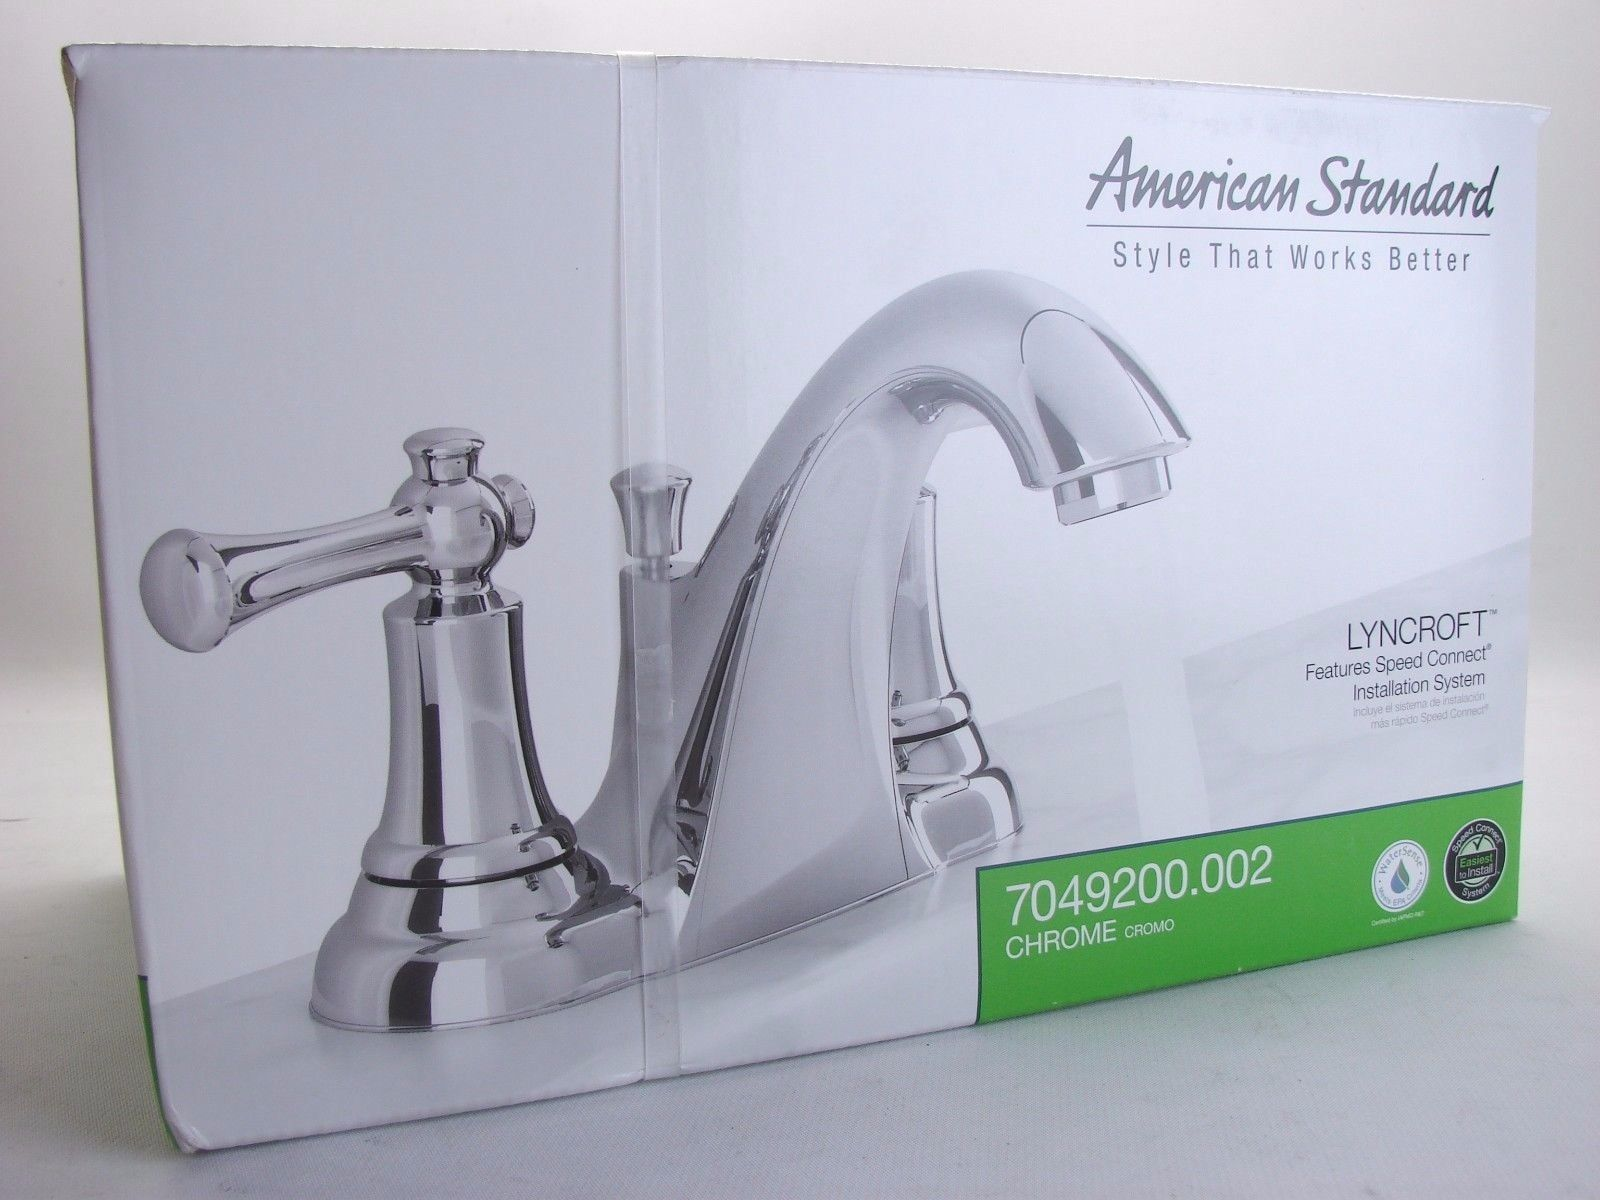 American Standard 7049200.002 Lyncroft and 50 similar items